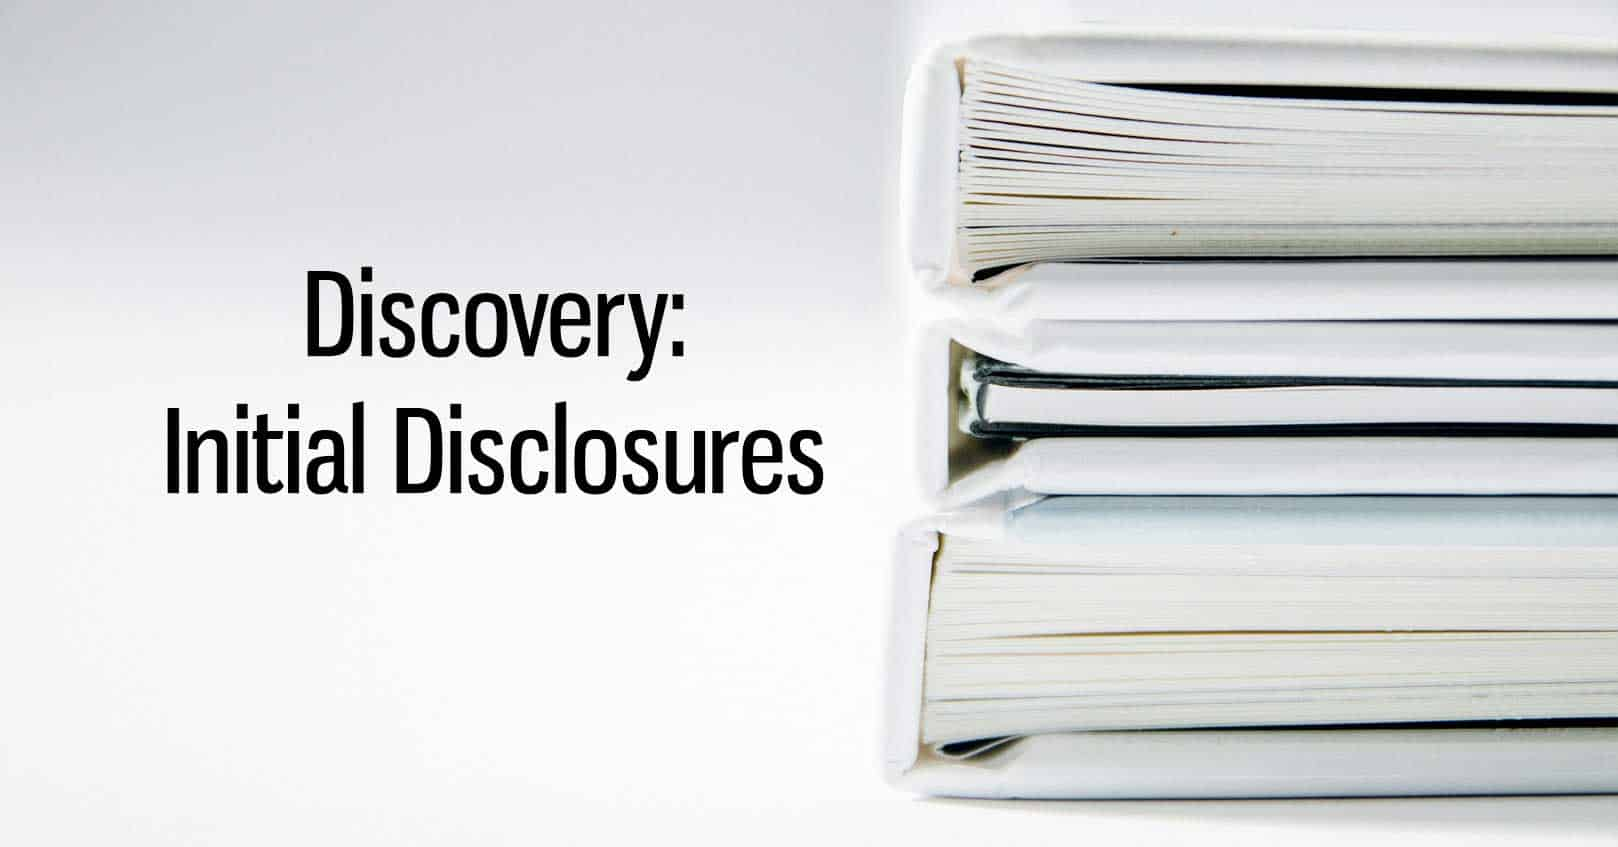 Discovery: Initial Disclosures